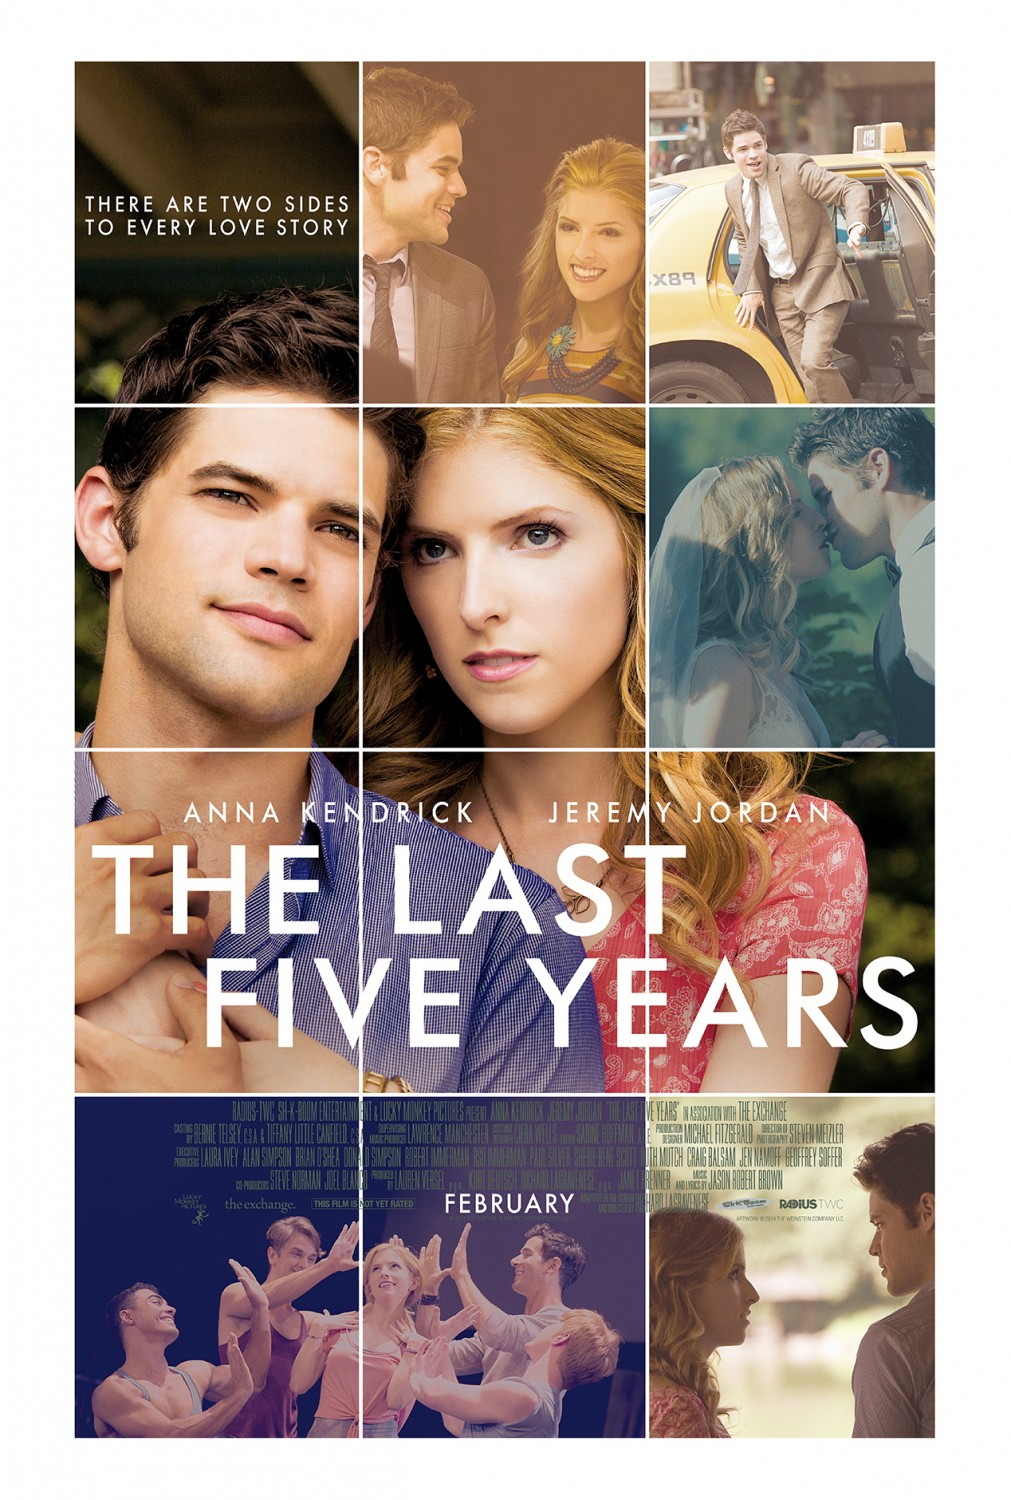 THE LAST FIVE YEARS-POSTER XLG-18DEZEMBRO2014